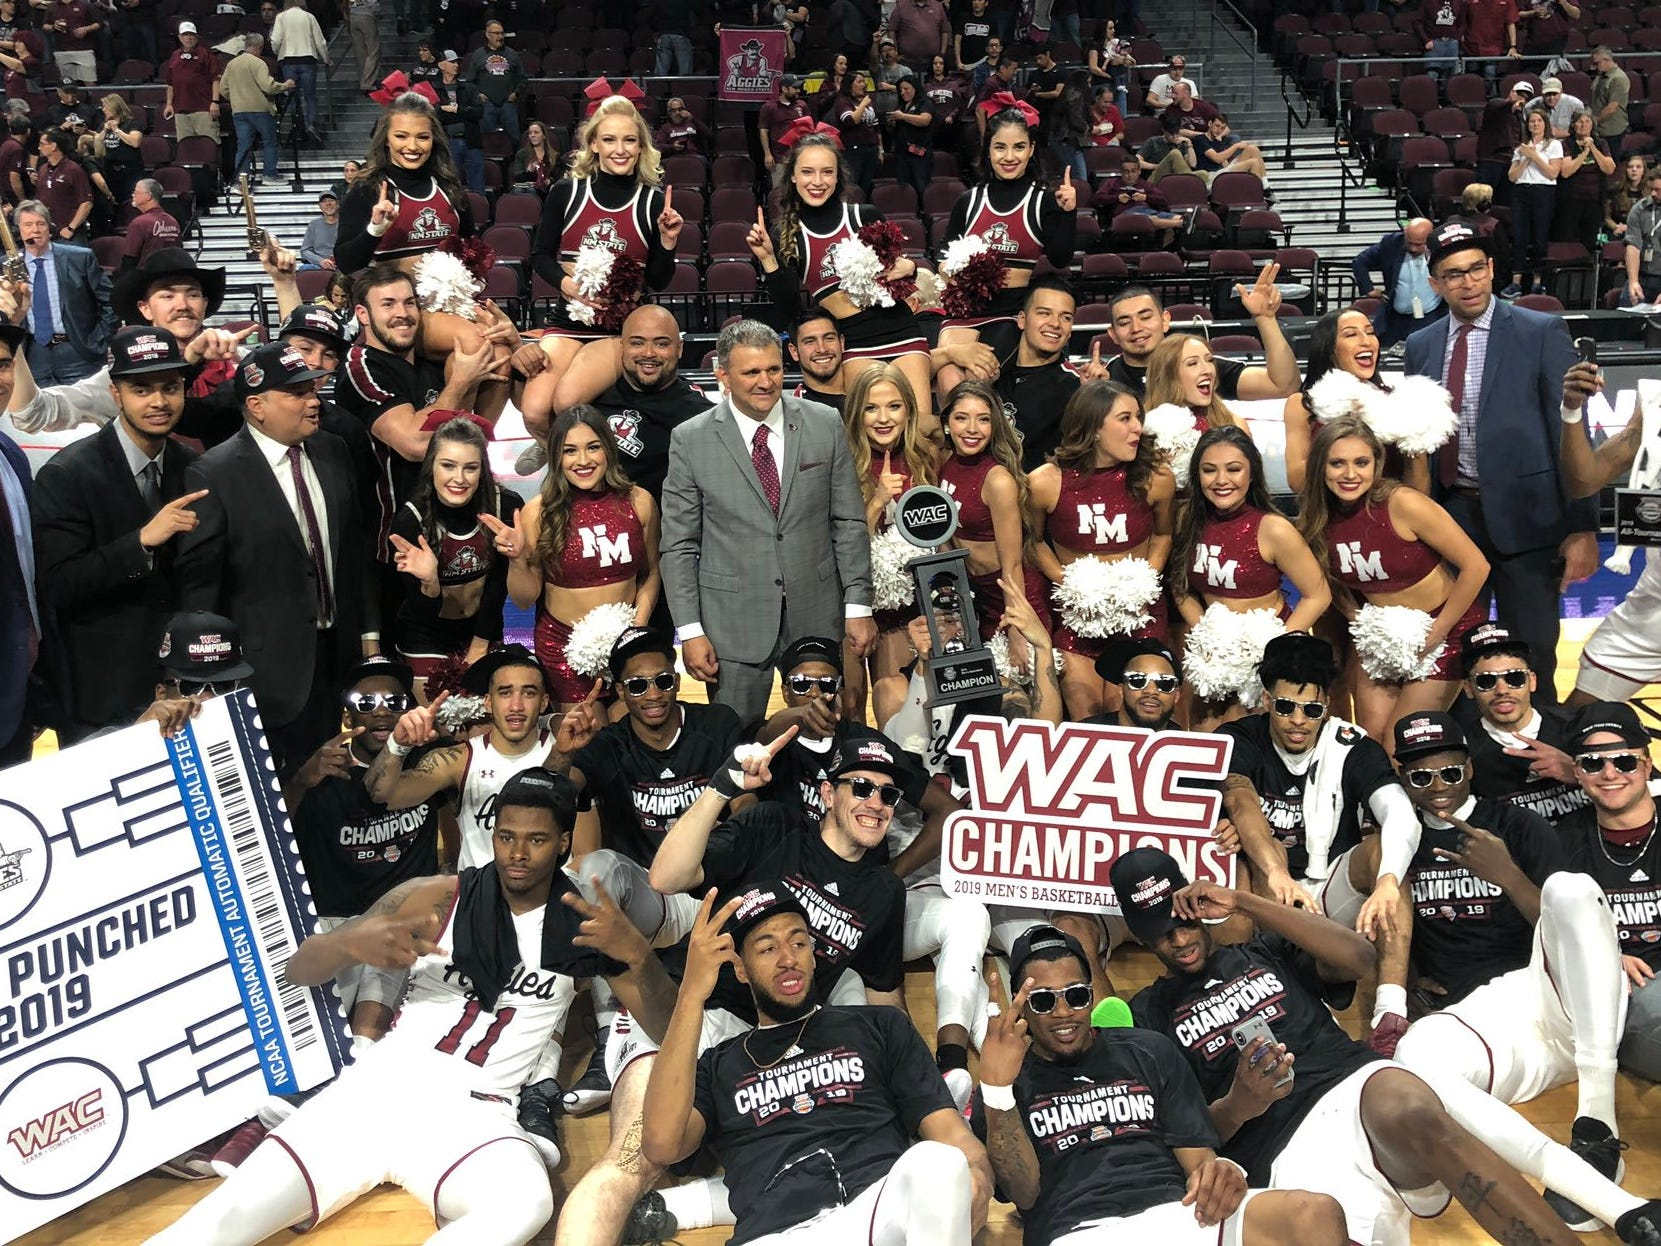 The New Mexico State men's basketball team gathers with the WAC trophy after winning the 2019 WAC Tournament title on Saturday, March 16, 2019, in Las Vegas.